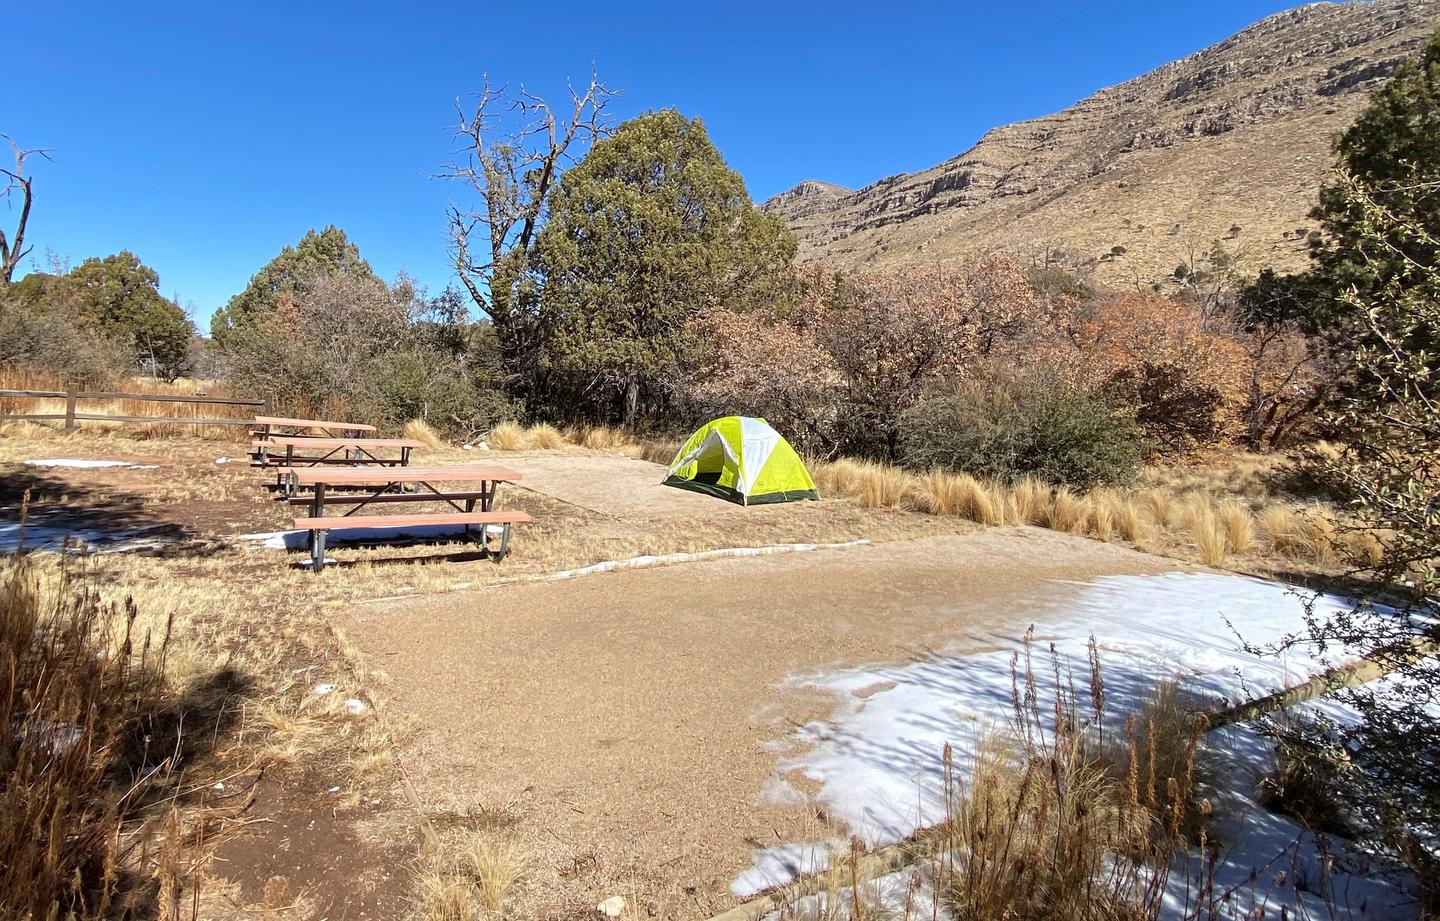 The group campsite located in Dog Canyon is shown with one 2-person tent on a tent pad.  This view is from the right side of the campsite and shows mountains in the background.Group campsite in Dog Canyon with surrounding trees and mountains.